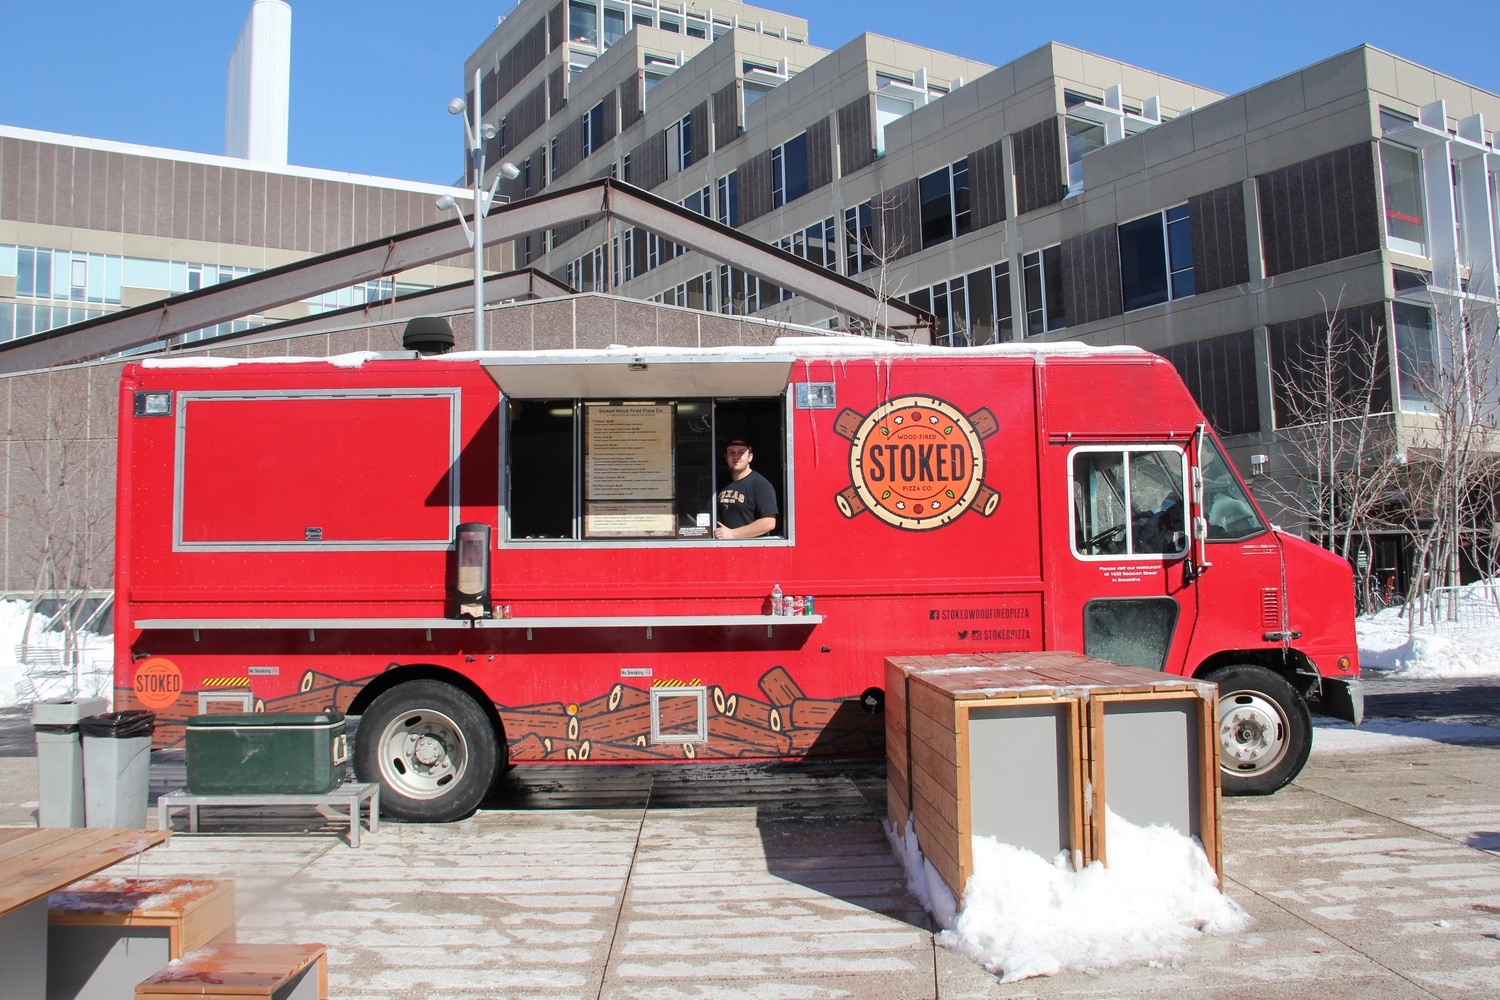 Ryan Mailhot, of Stoked Wood Fire Pizza Co., poses with his truck on Tuesday.